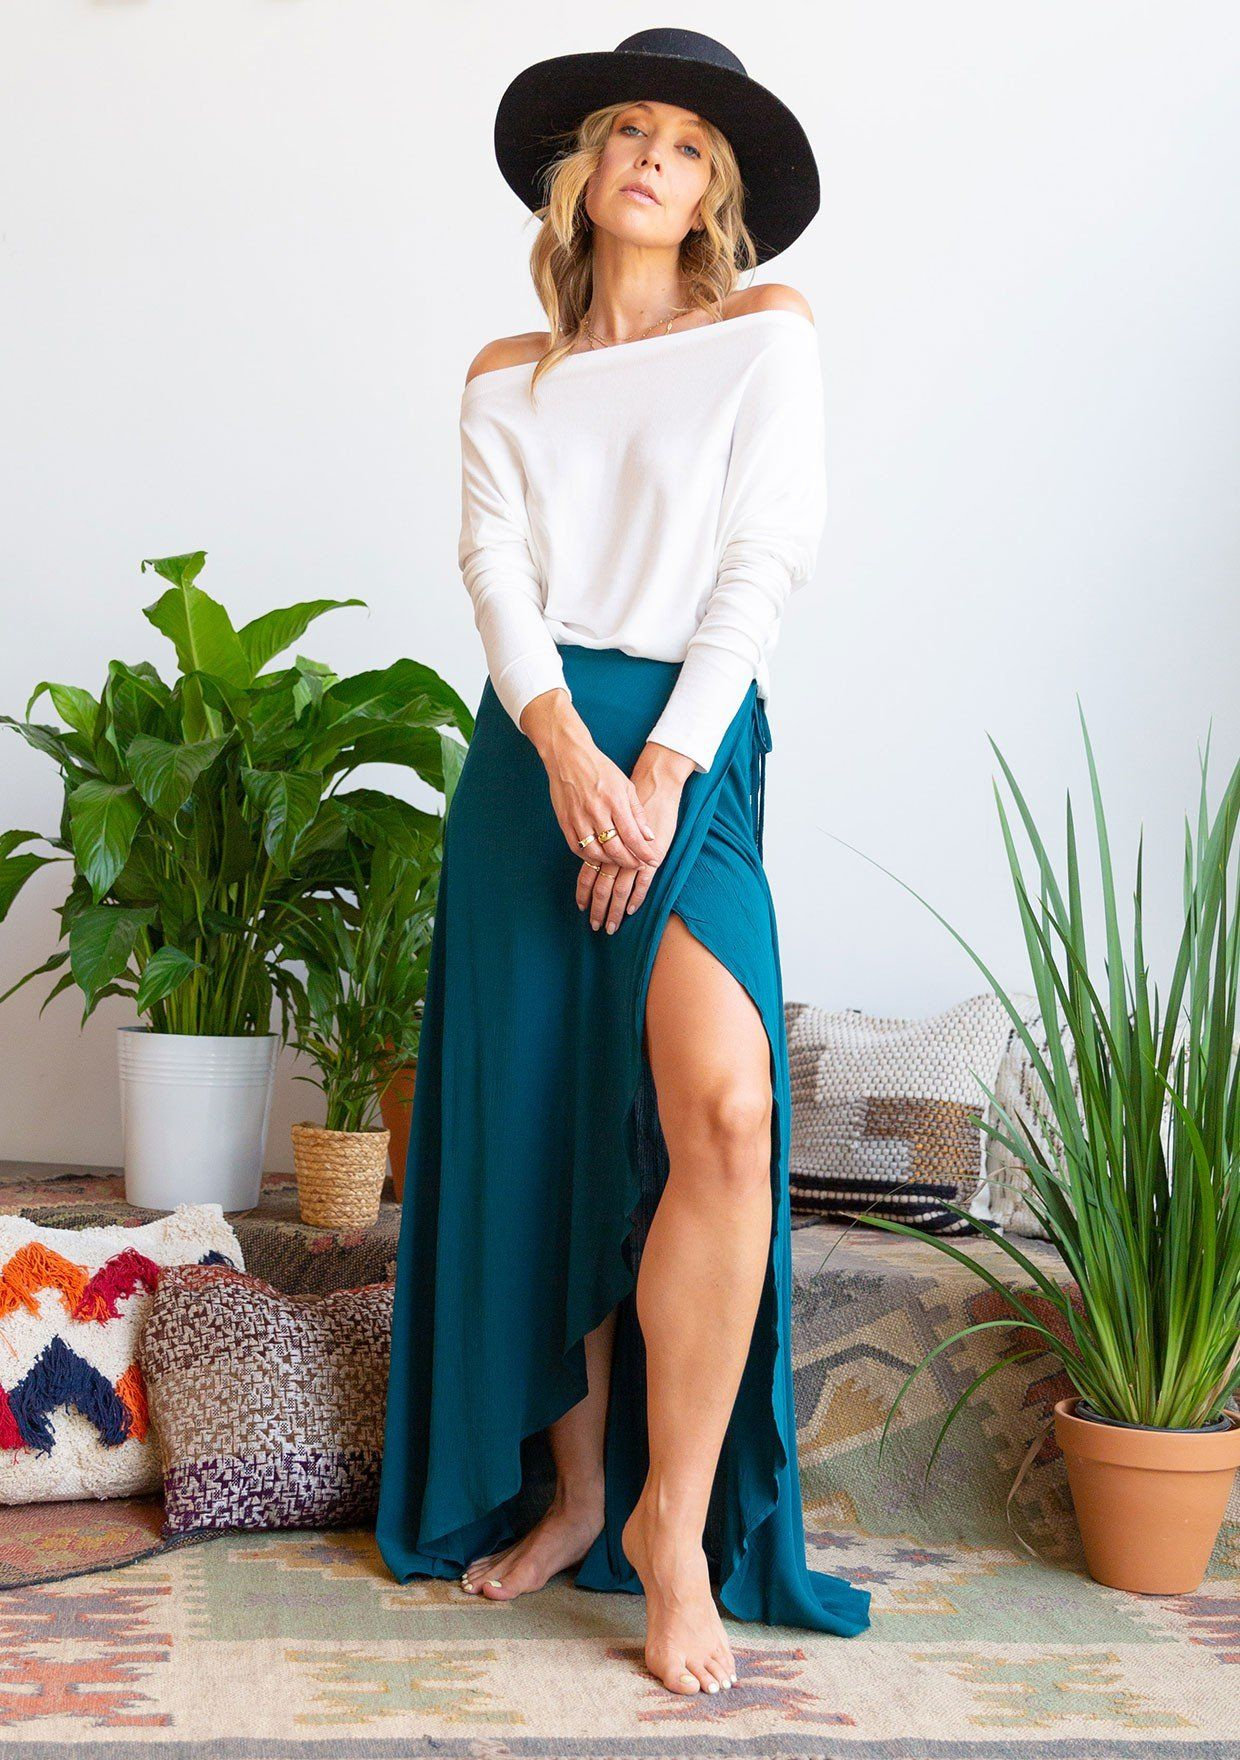 [Color: Peacock] Billowy, romantic maxi wrap skirt. Featuring a long flowy silhouette, a sexy high slit, and a side tie closure at the waist. Worn here with a long sleeve tee.